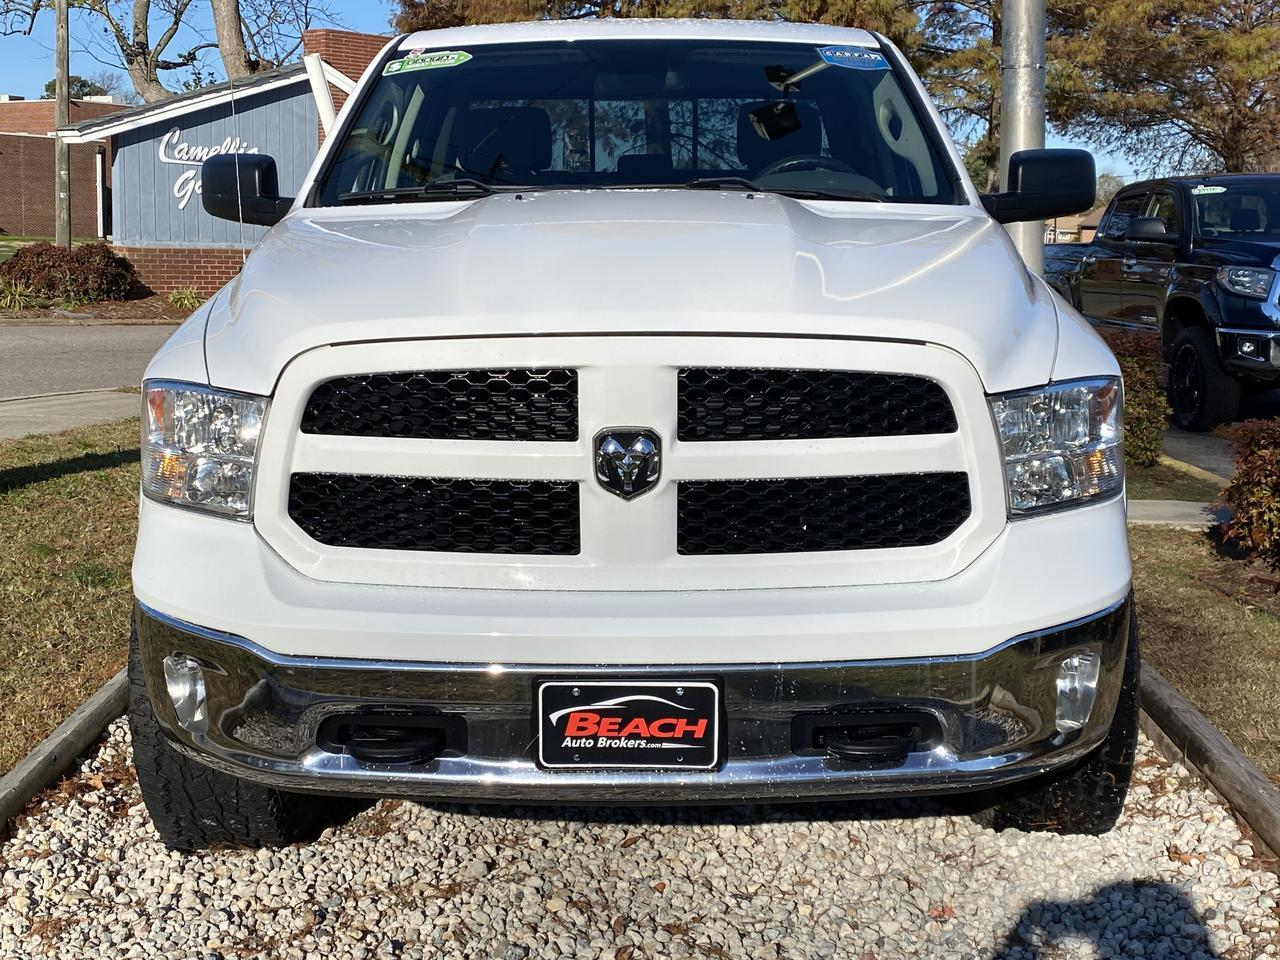 2016 DODGE RAM 1500 OUTDOORSMAN CREW CAB 4X4, WARRANTY, LONG BED, BLUETOOTH, AUX/USB PORT, TOW PKG, Norfolk VA